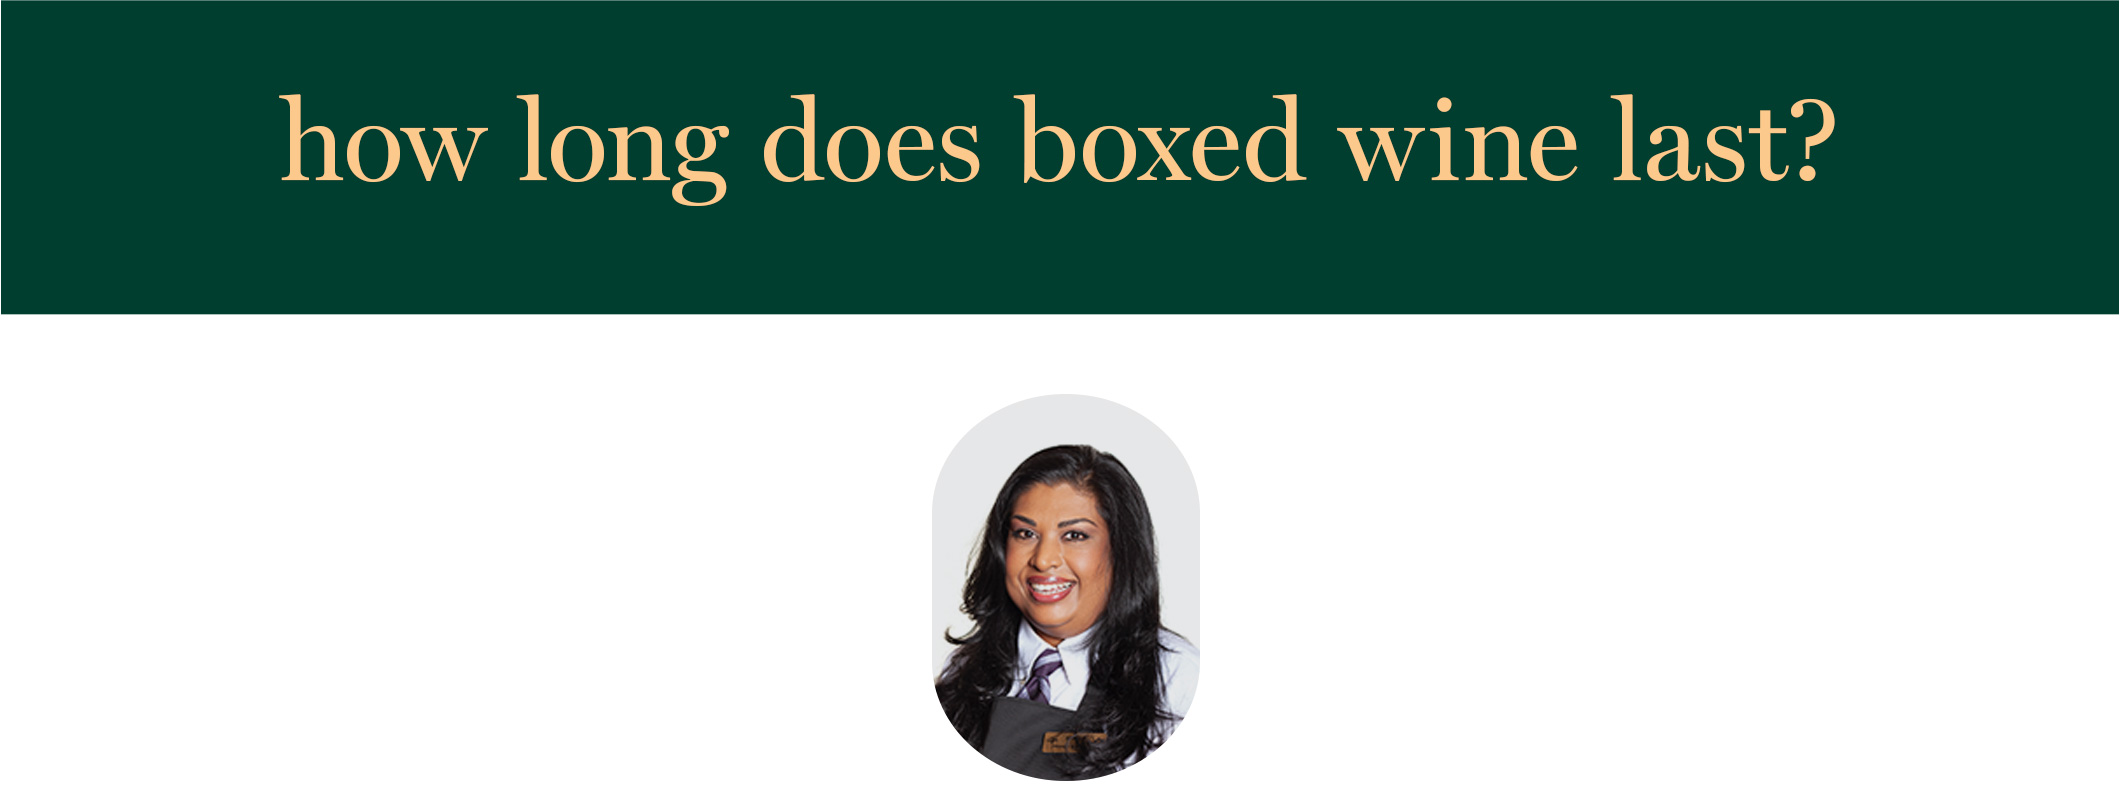 how long does boxed wine last?